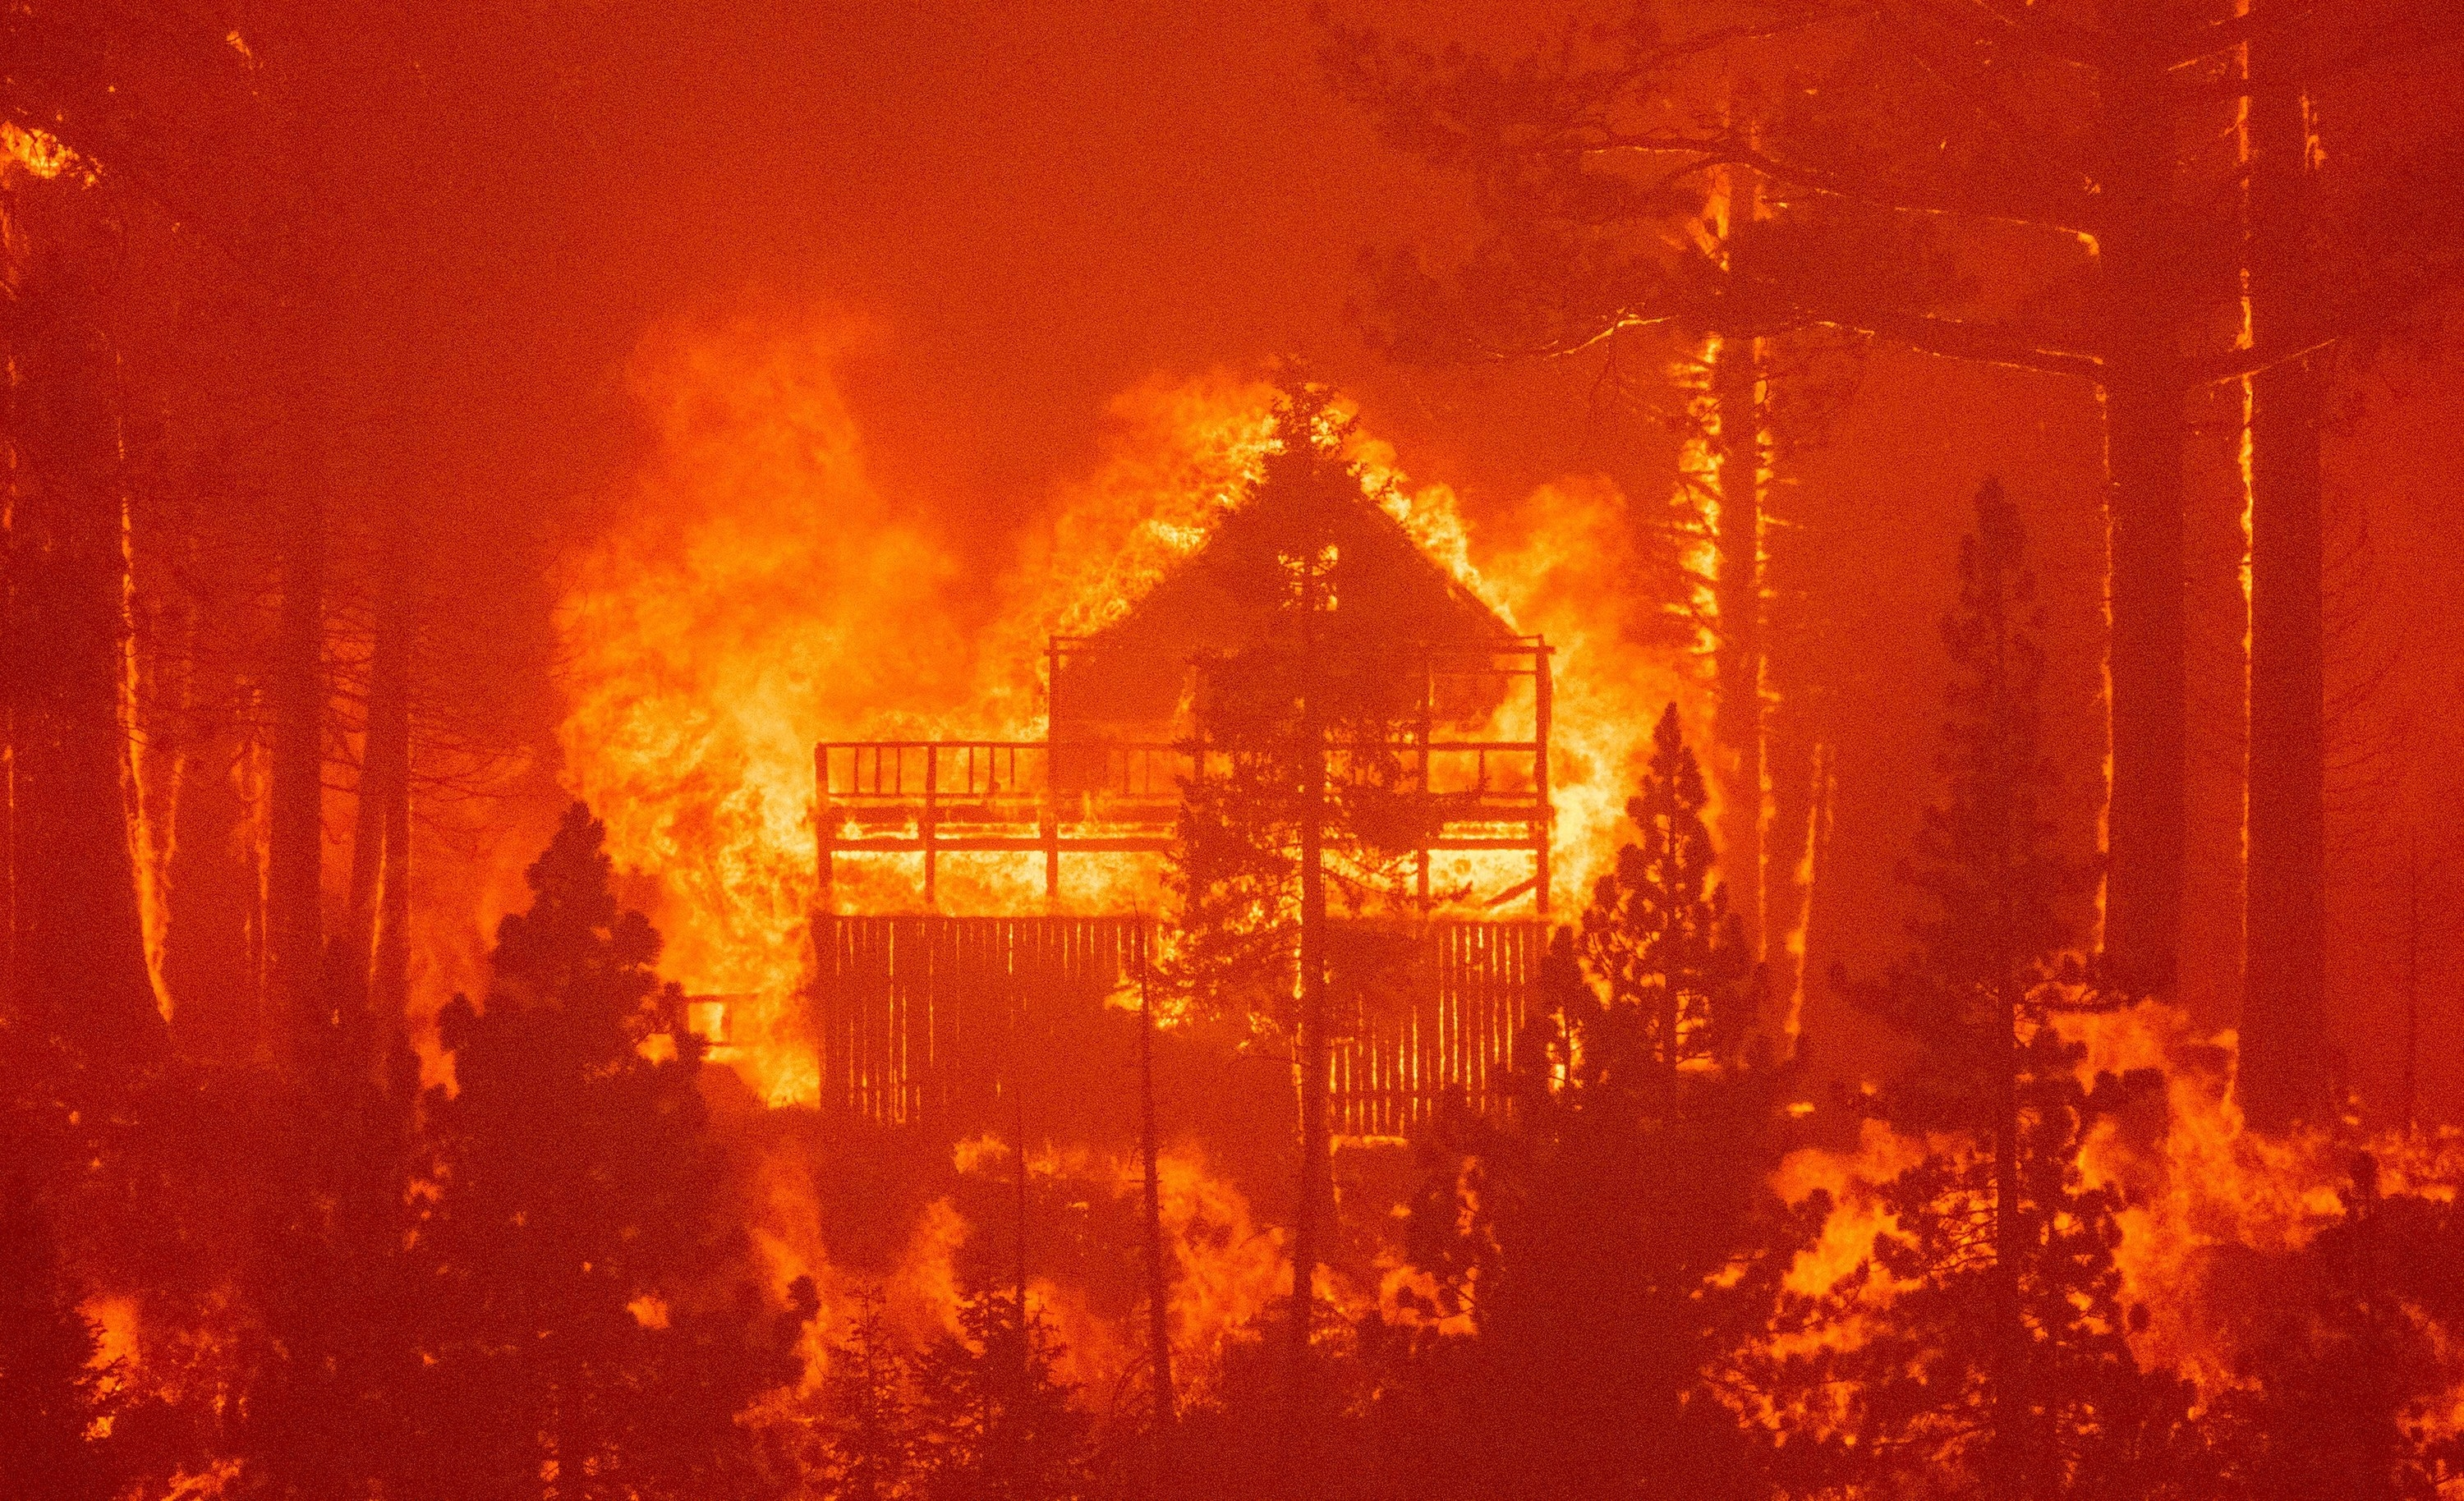 A home engulfed in flames, with trees surrounding it, in the Caldor fire